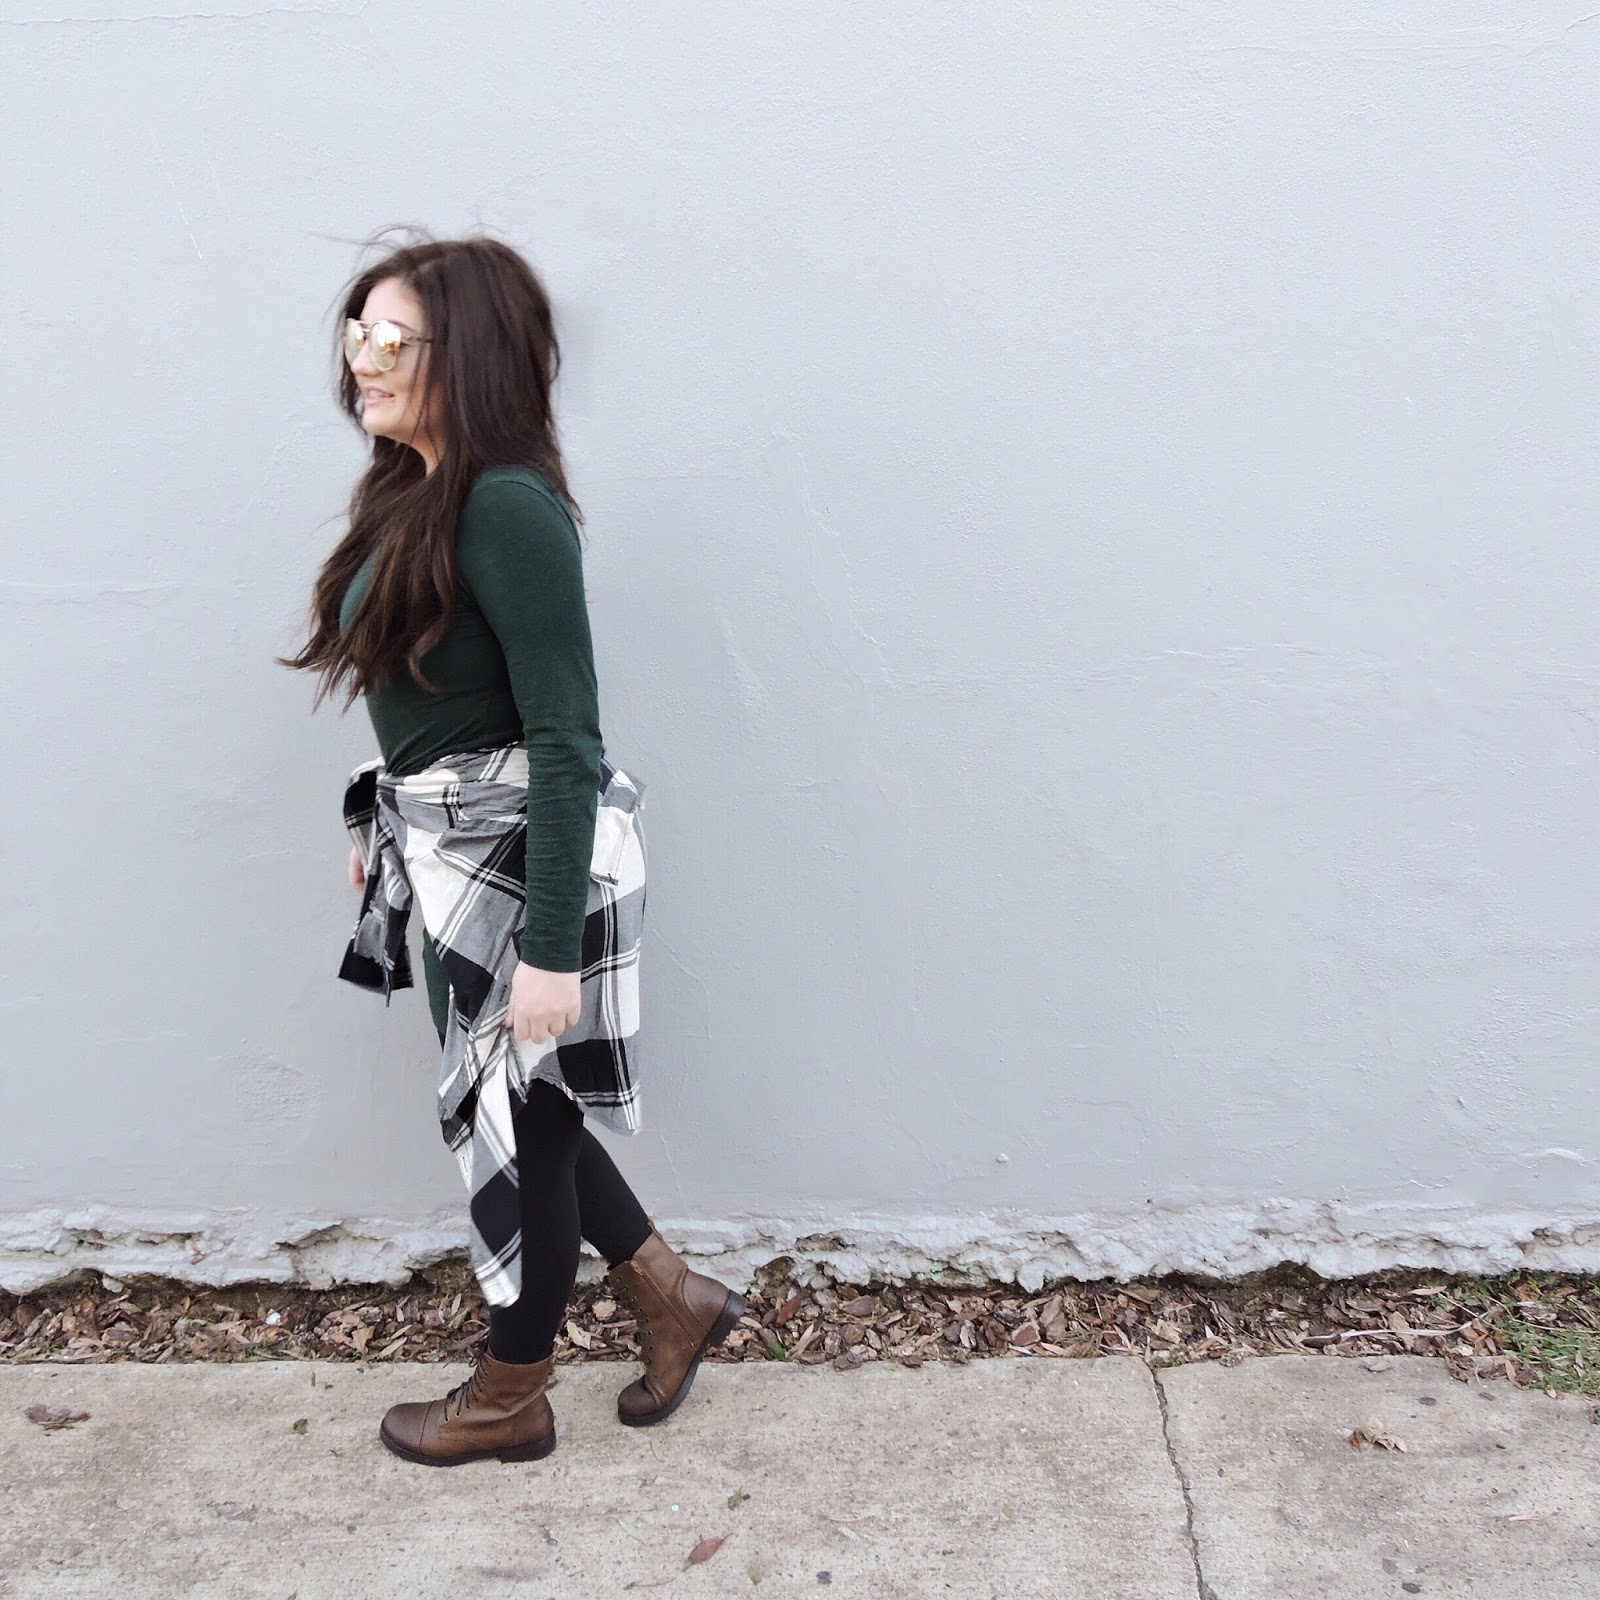 cozy cute winter arm boots flannel sunglasses quay australia combat target h&m abercrombie lululemon sugarly outfit blogger style fashion fall kylie jenner b